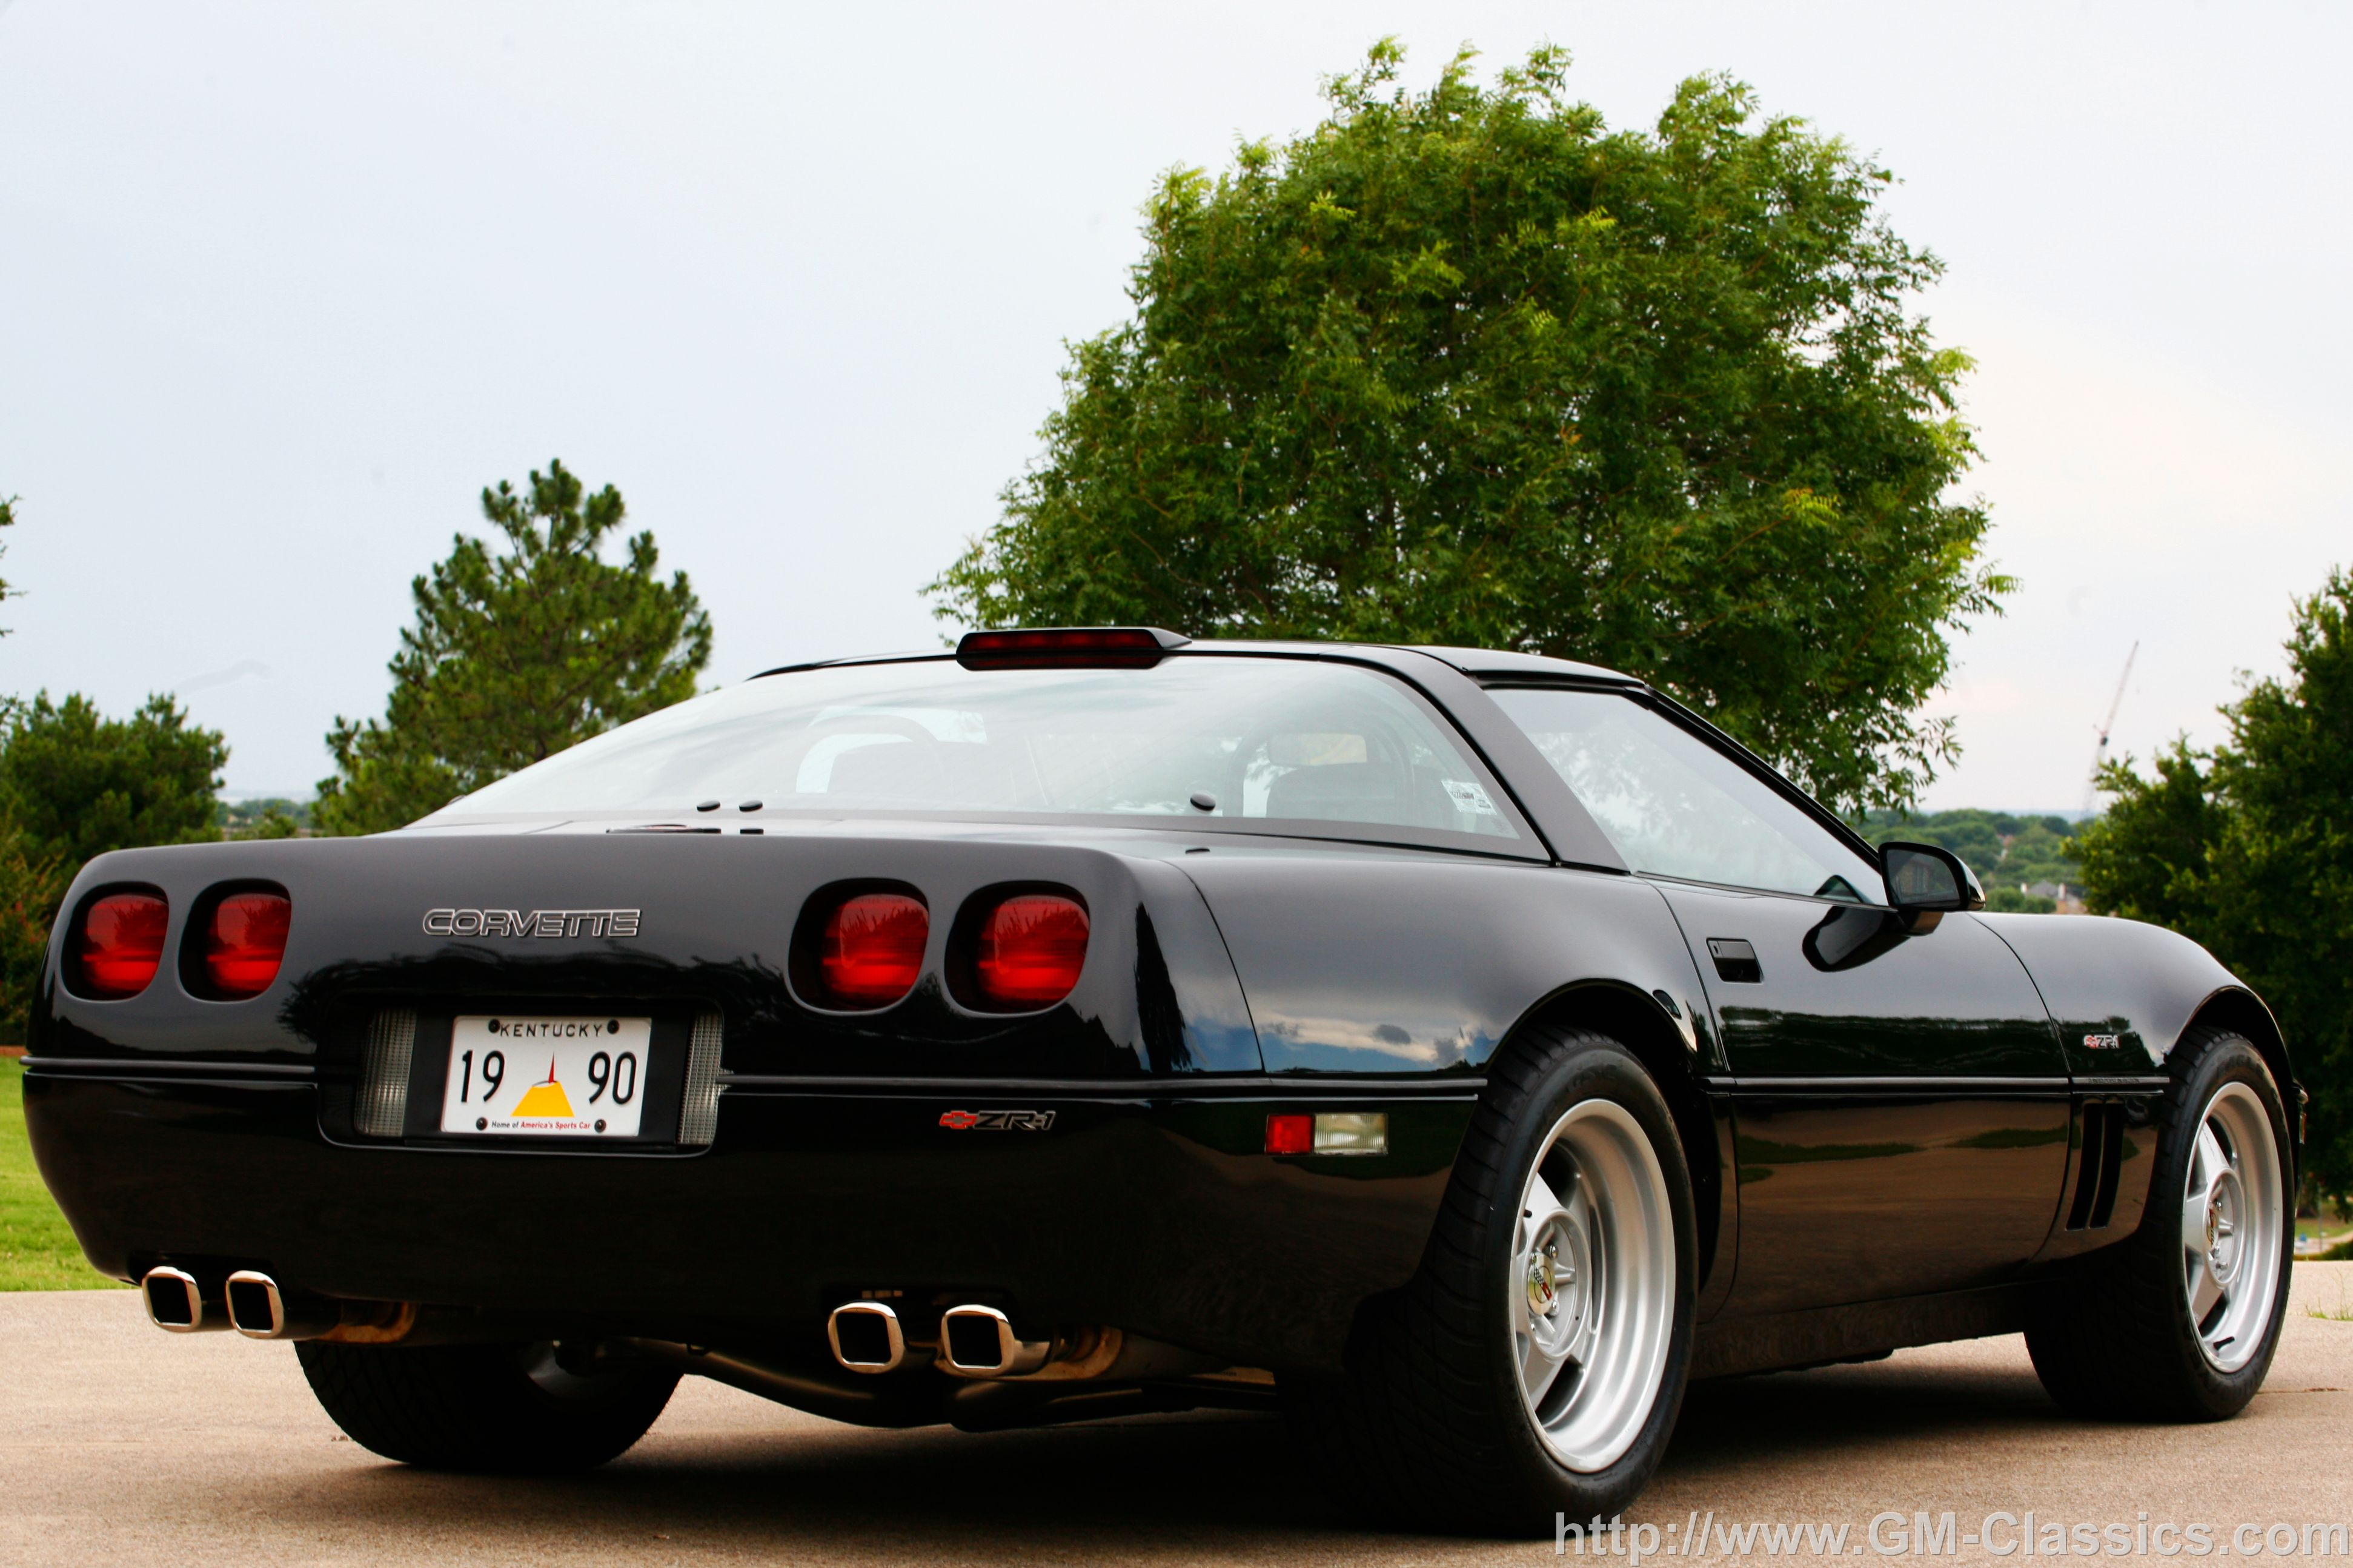 Zr1 Corvette Home Page